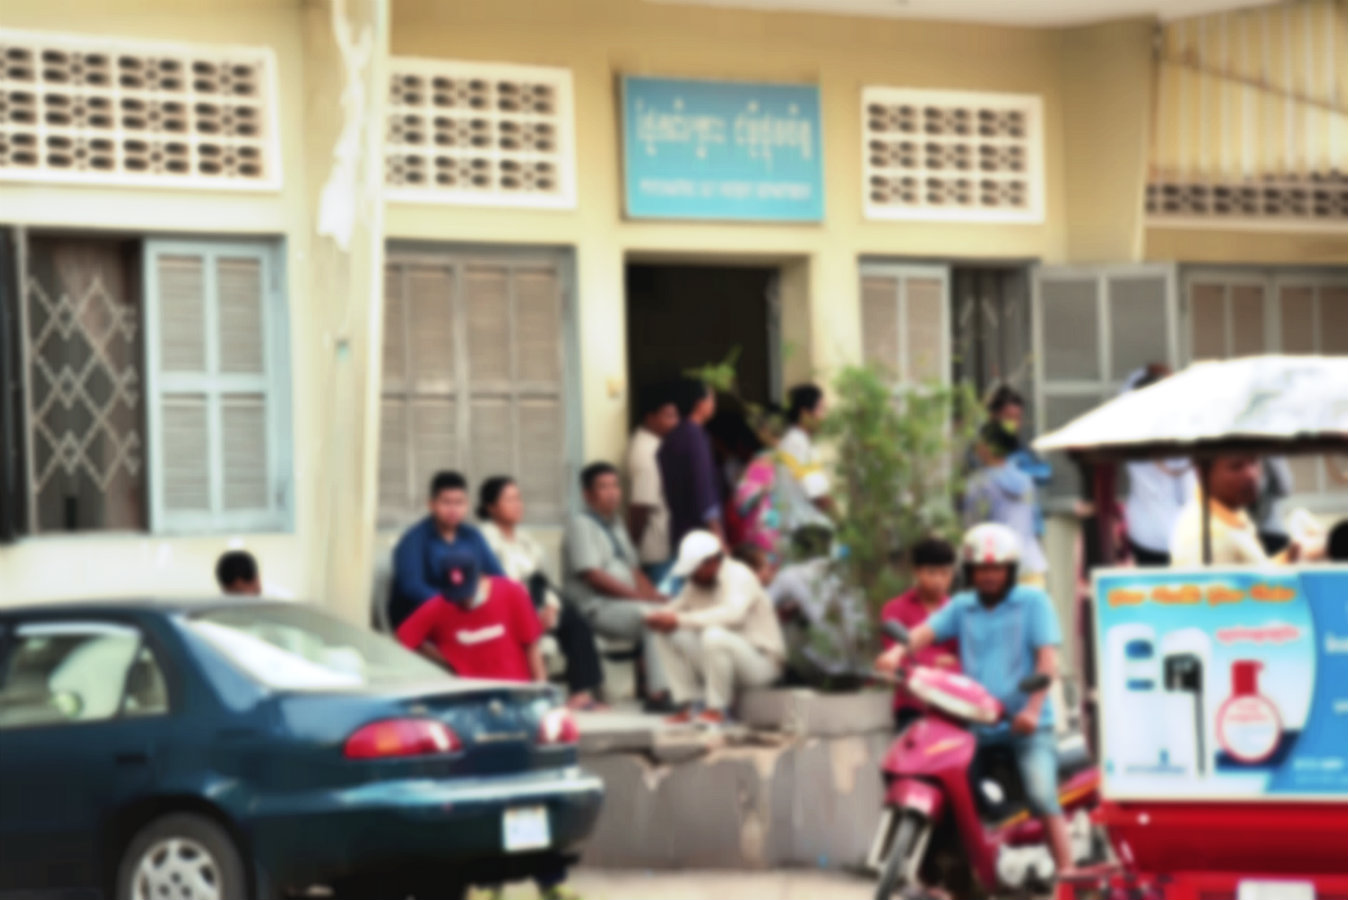 asean and cambodia The meetings come as cambodia is experiencing a period of political instability as observers say is unprecedented in its modern history phnom penh — prime minister hun sen will attend the asean summit in manila, the philippines, this weekend with an entourage of top ministers as political tensions.